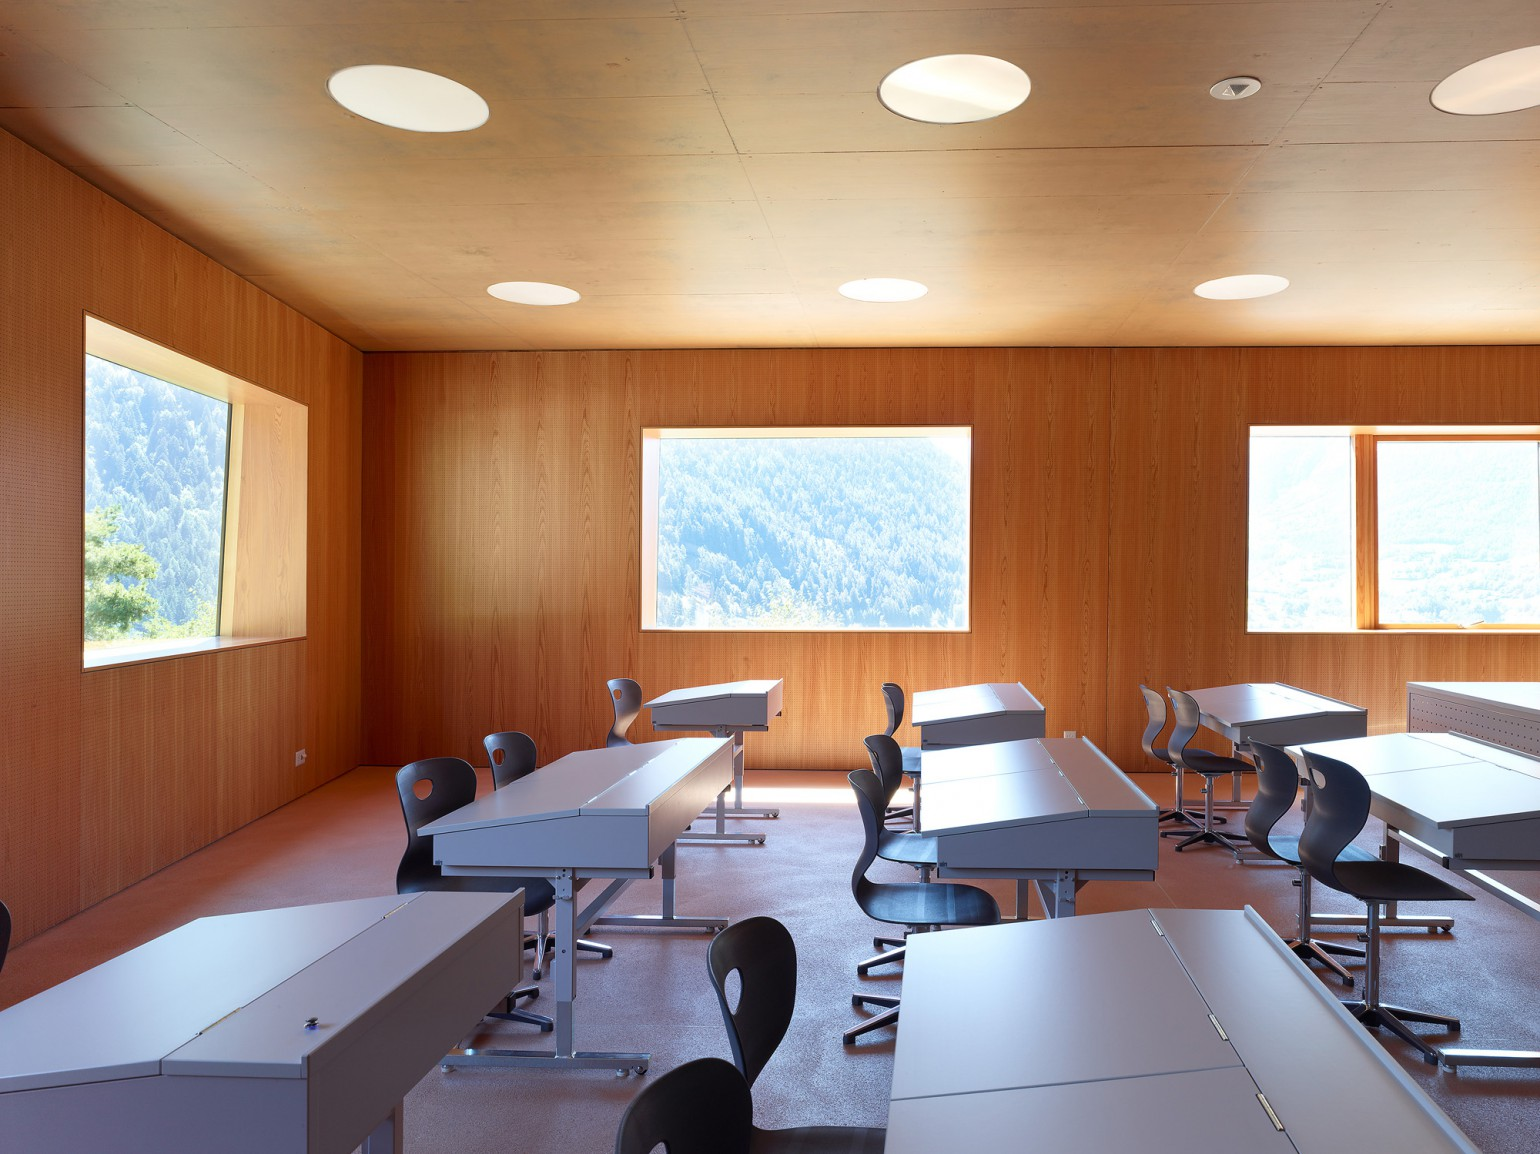 ecole_primaire_volleges_meyer_architecture_sion_09